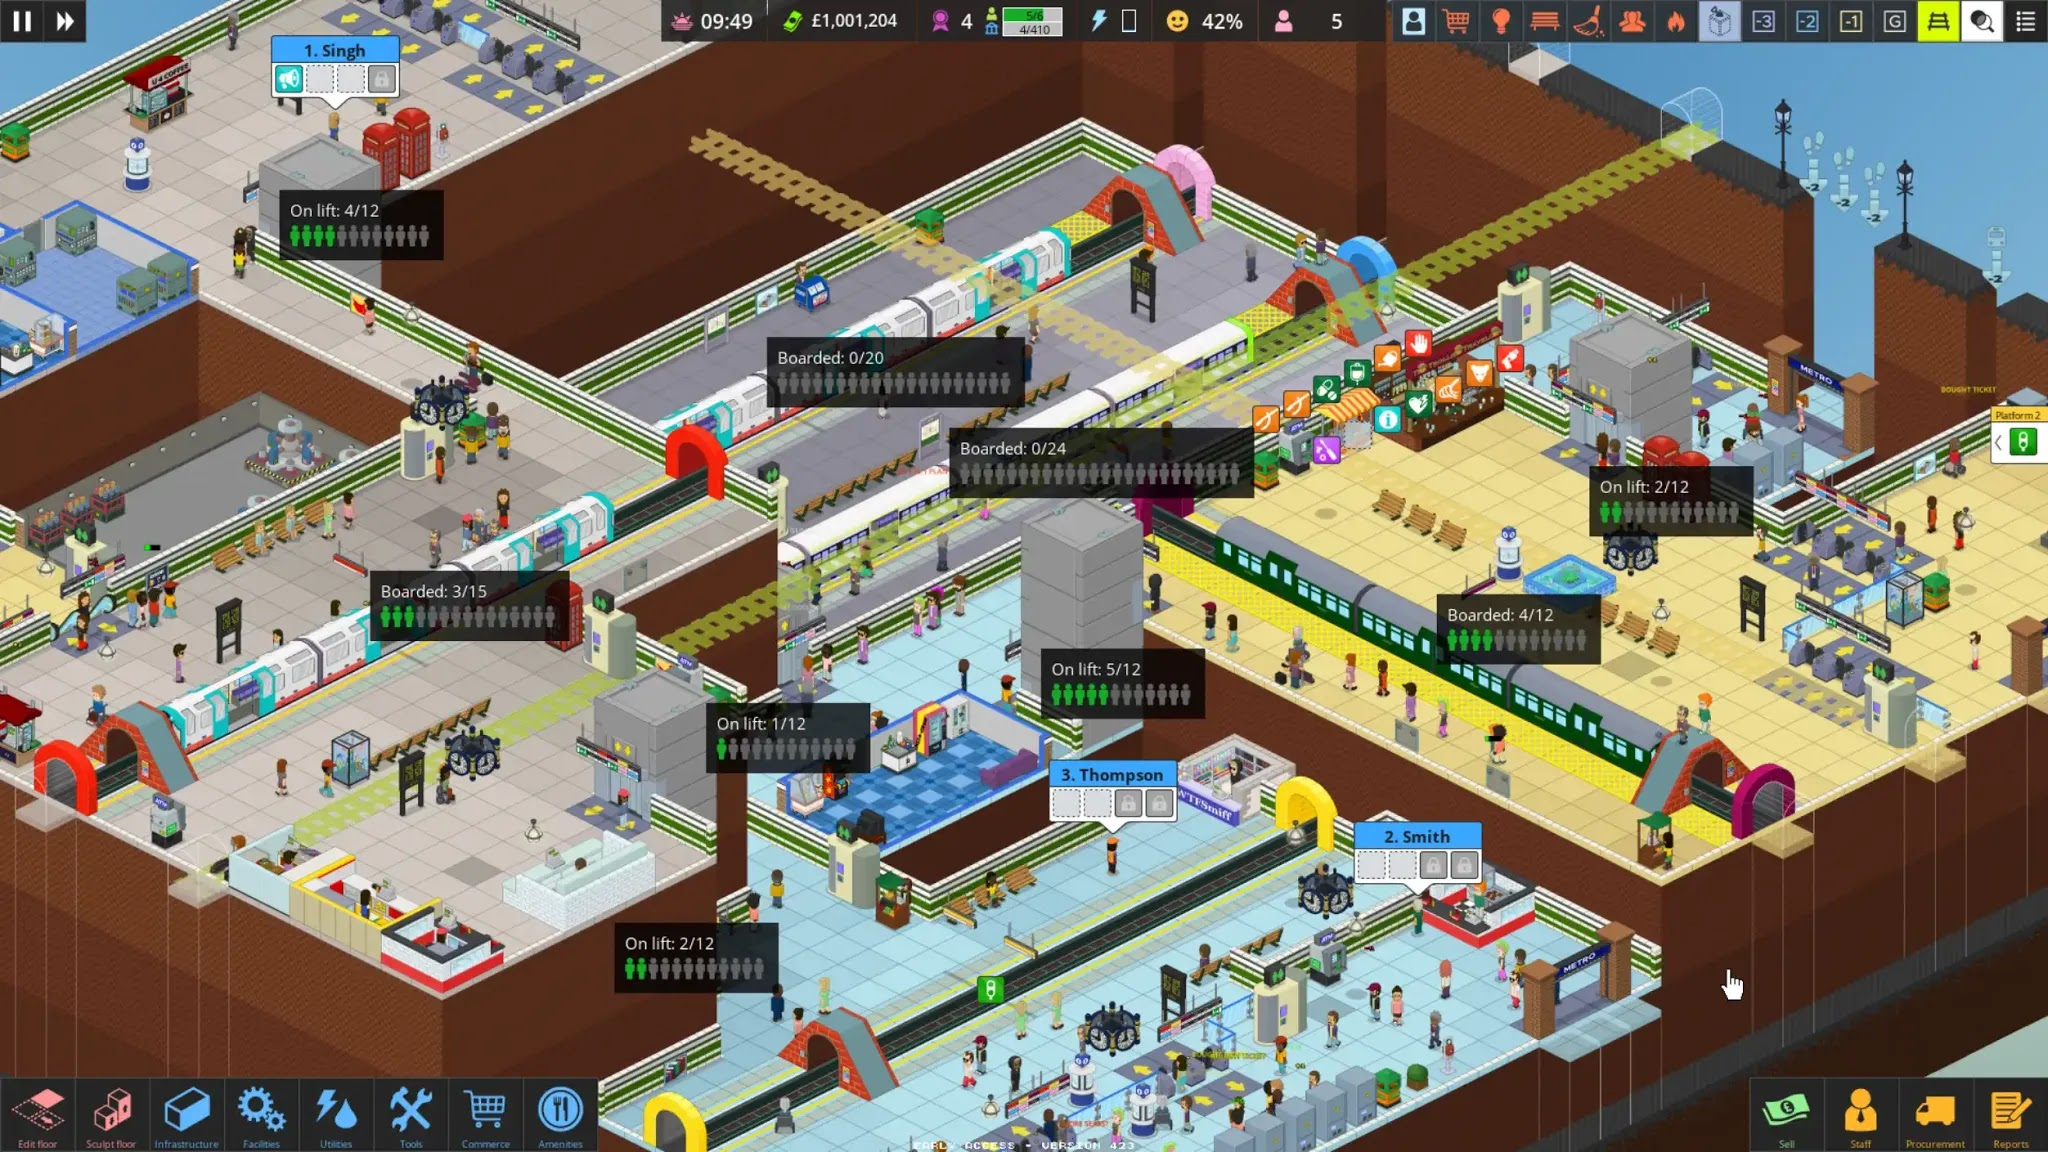 A multi floor station in Overcrowd